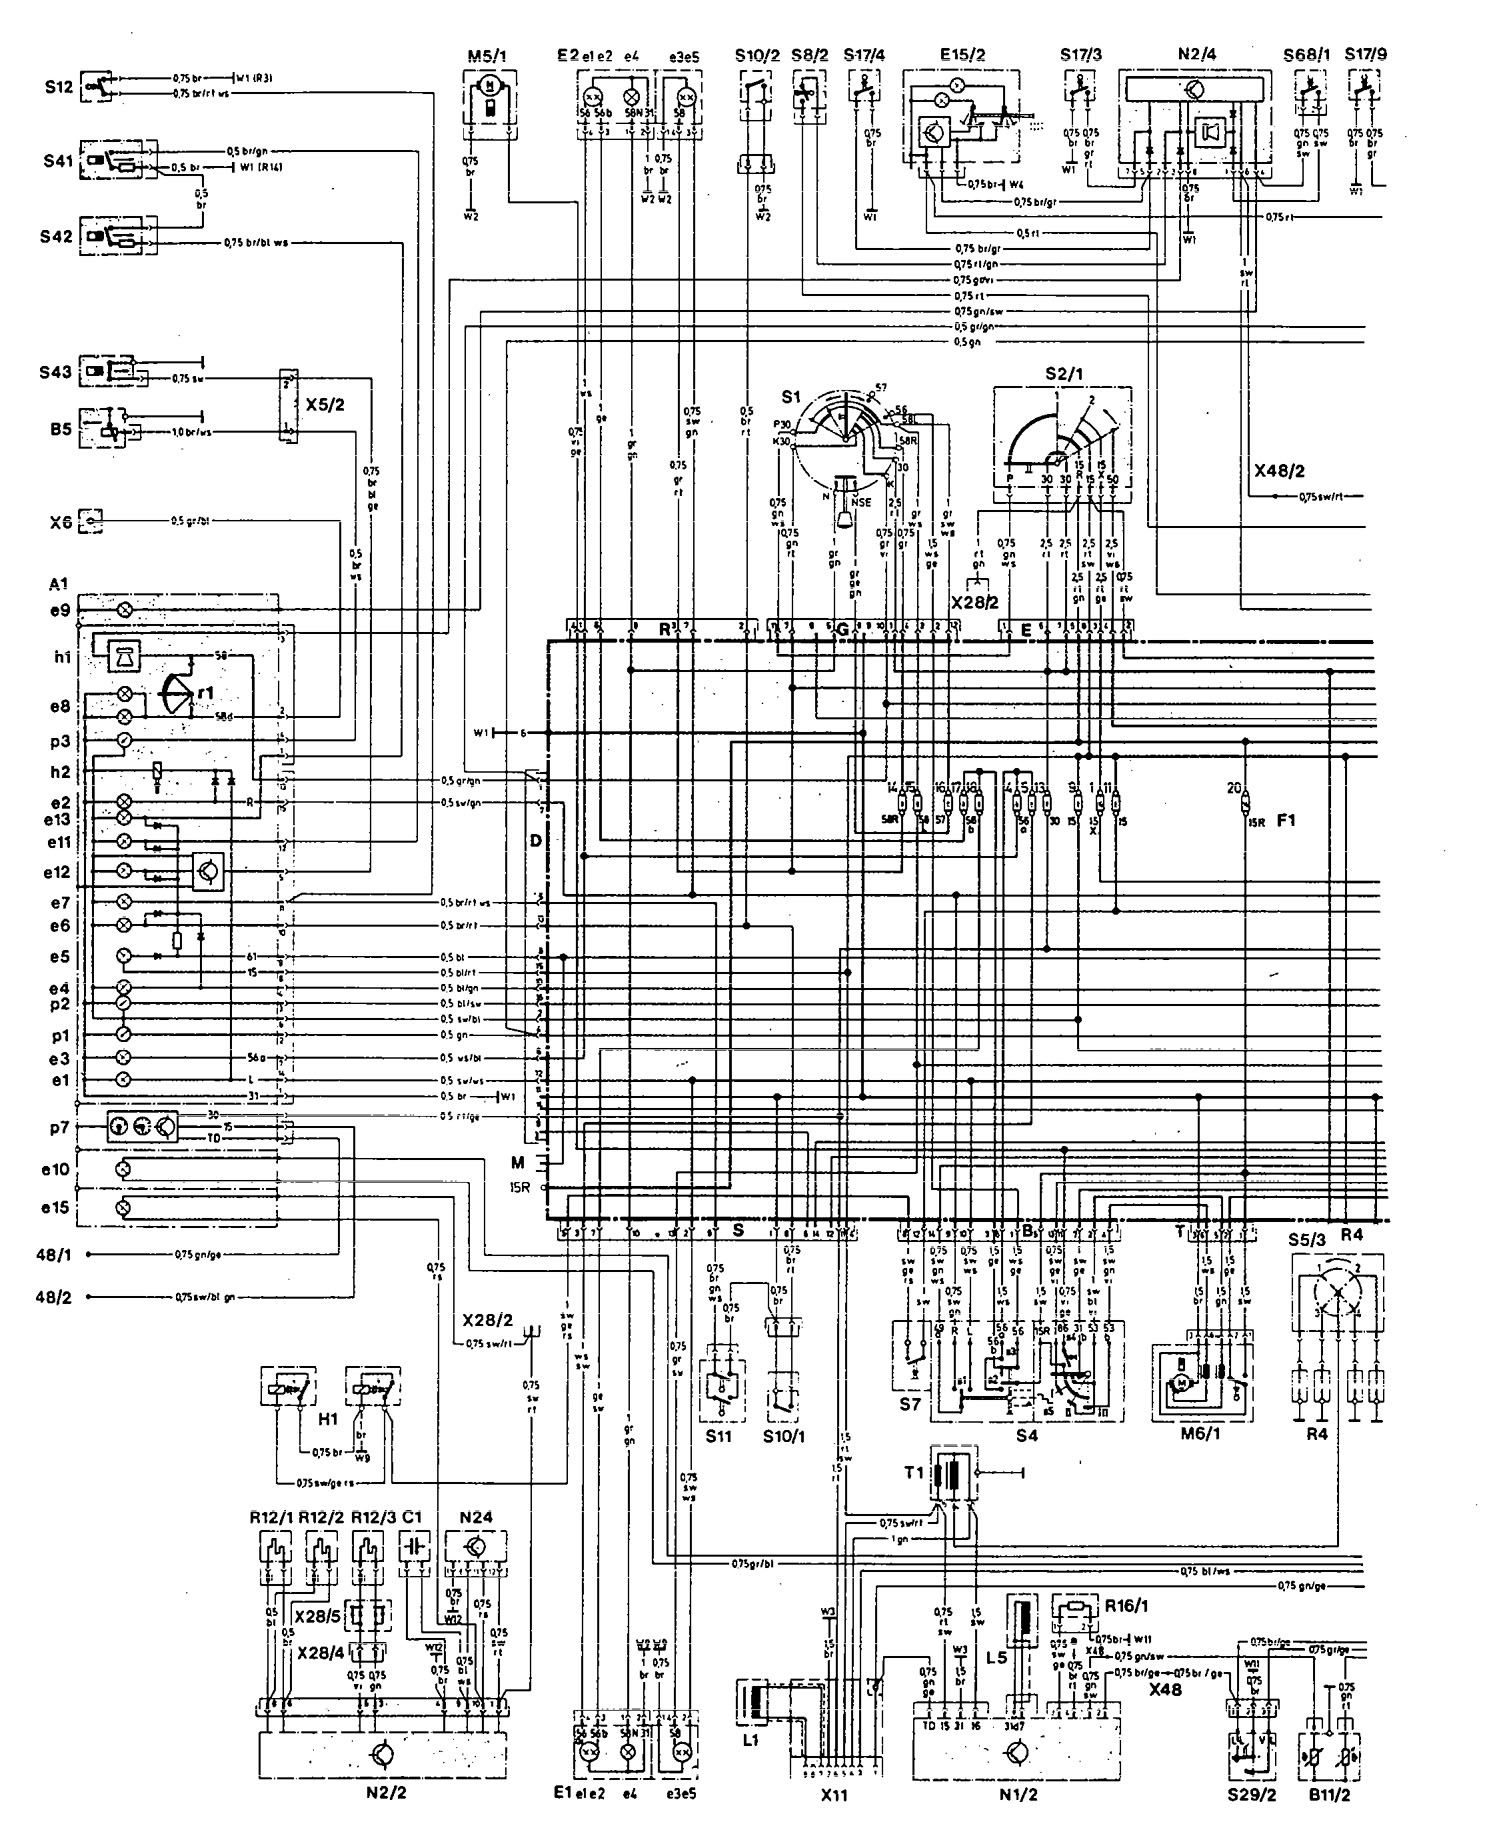 Mercedes Benz 190e Electrical Wiring Diagram Download : Mercedes e wiring diagrams charging system